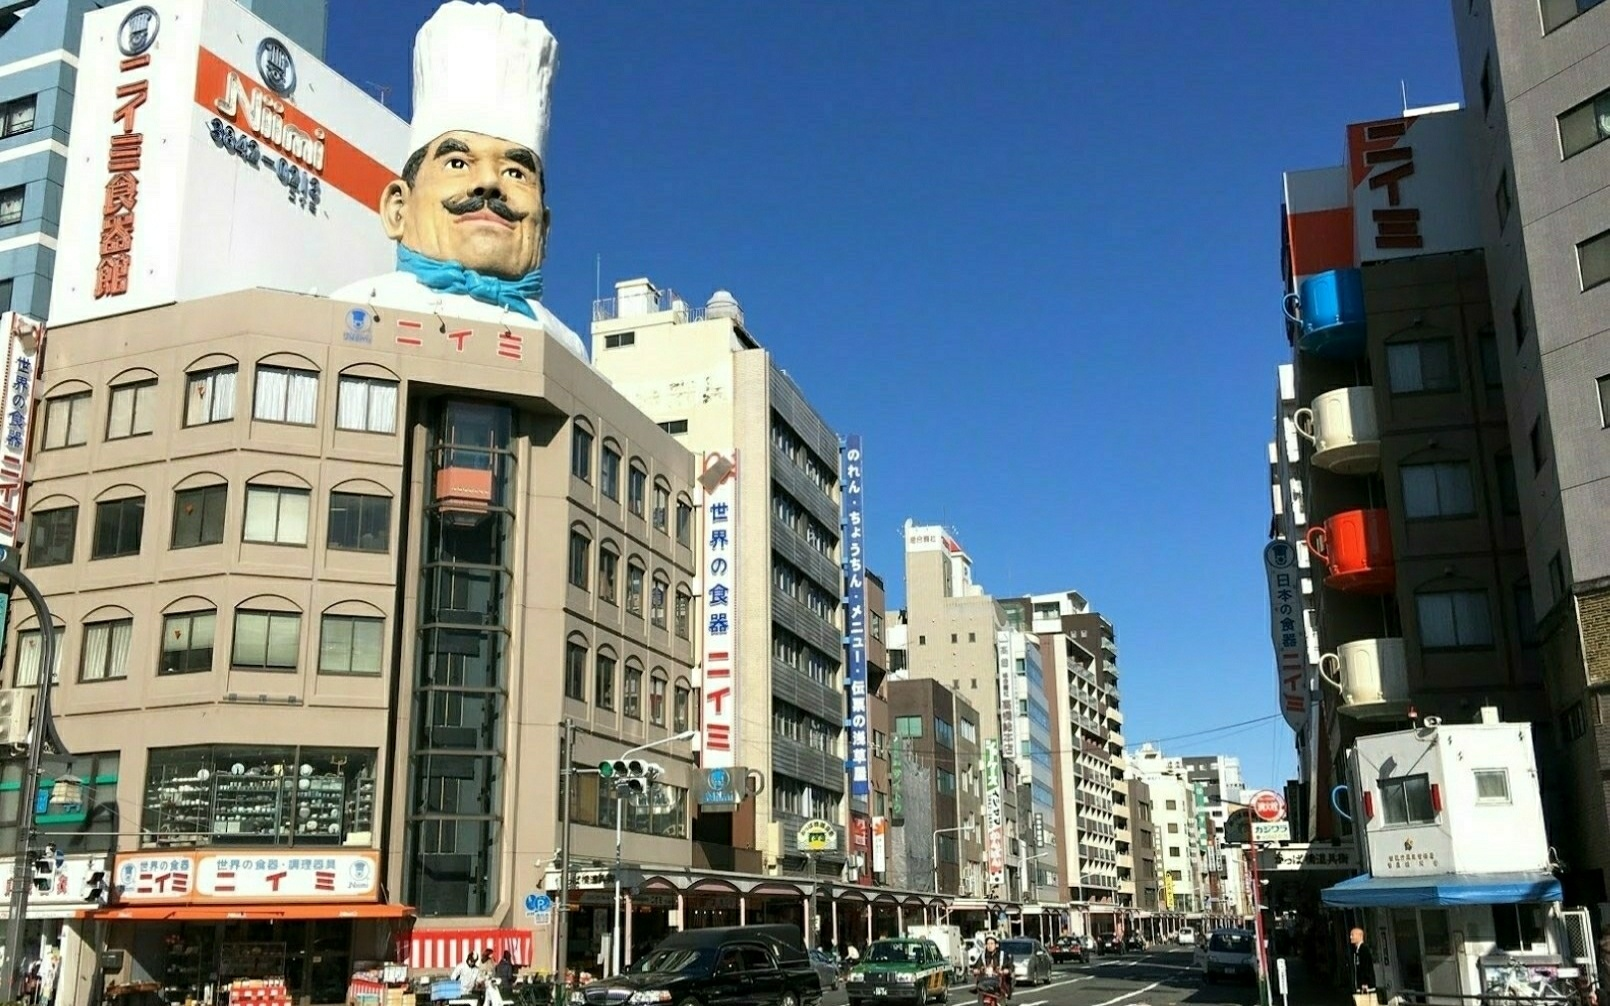 Kappabashi Dougugai Street, the world\\\\\\\\\\\\\\\\\\\\\\\\\\\\\\\'s largest kitchenware town!!